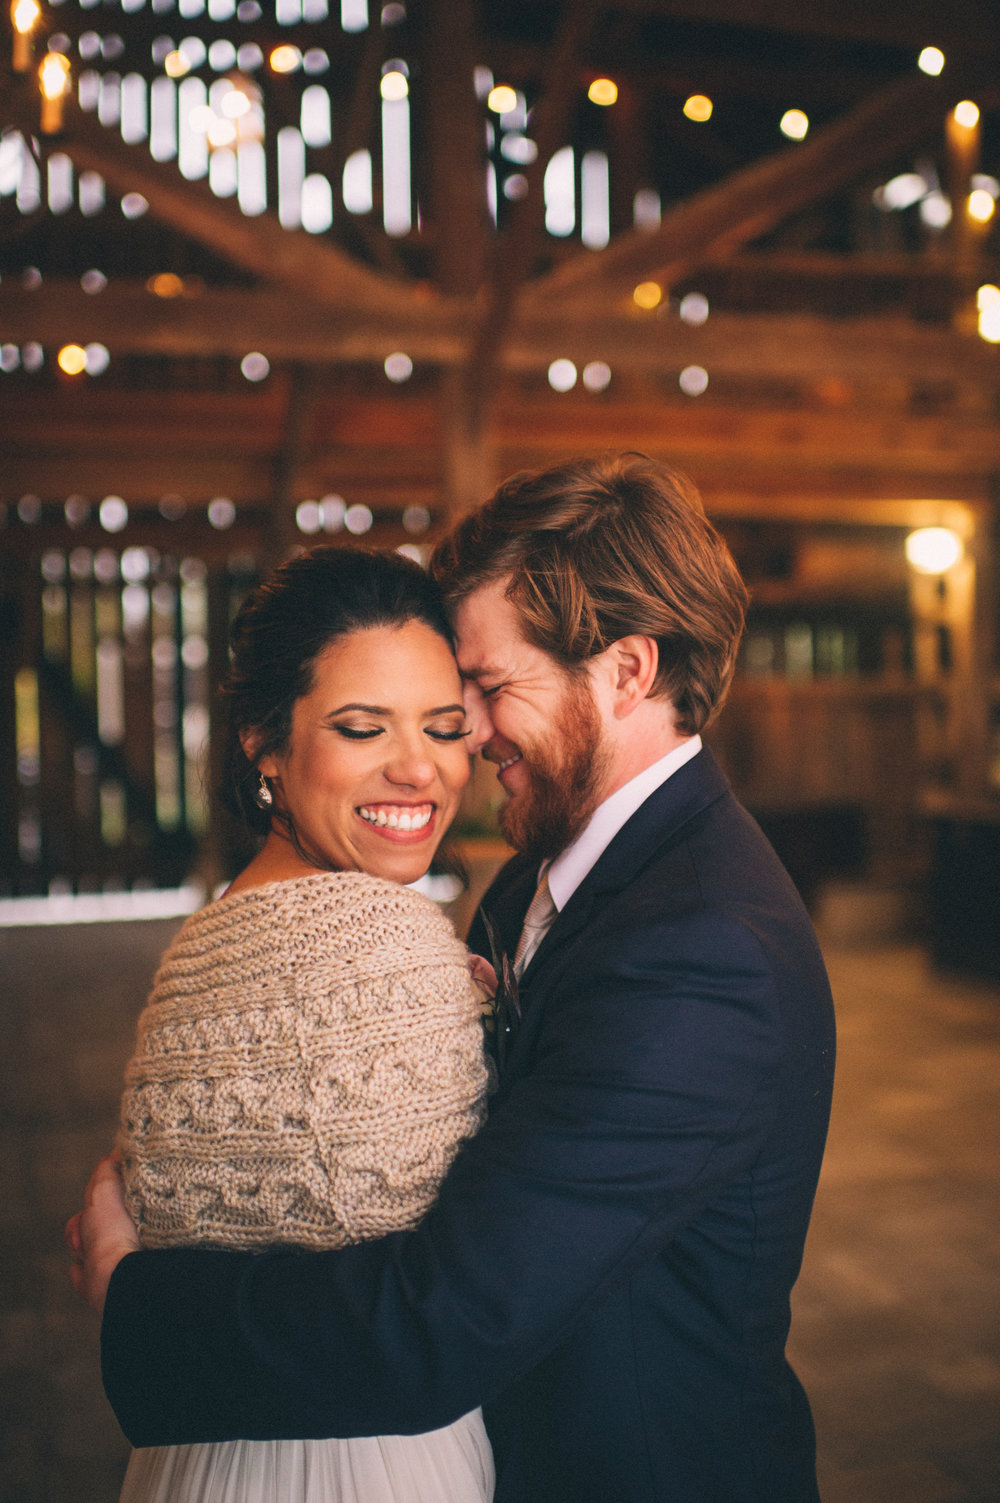 Micaha & Austin // Cozy Autumn Wedding at Springhouse Gardens // Lexington, Kentucky // Wedding Photography // Couple Portrait